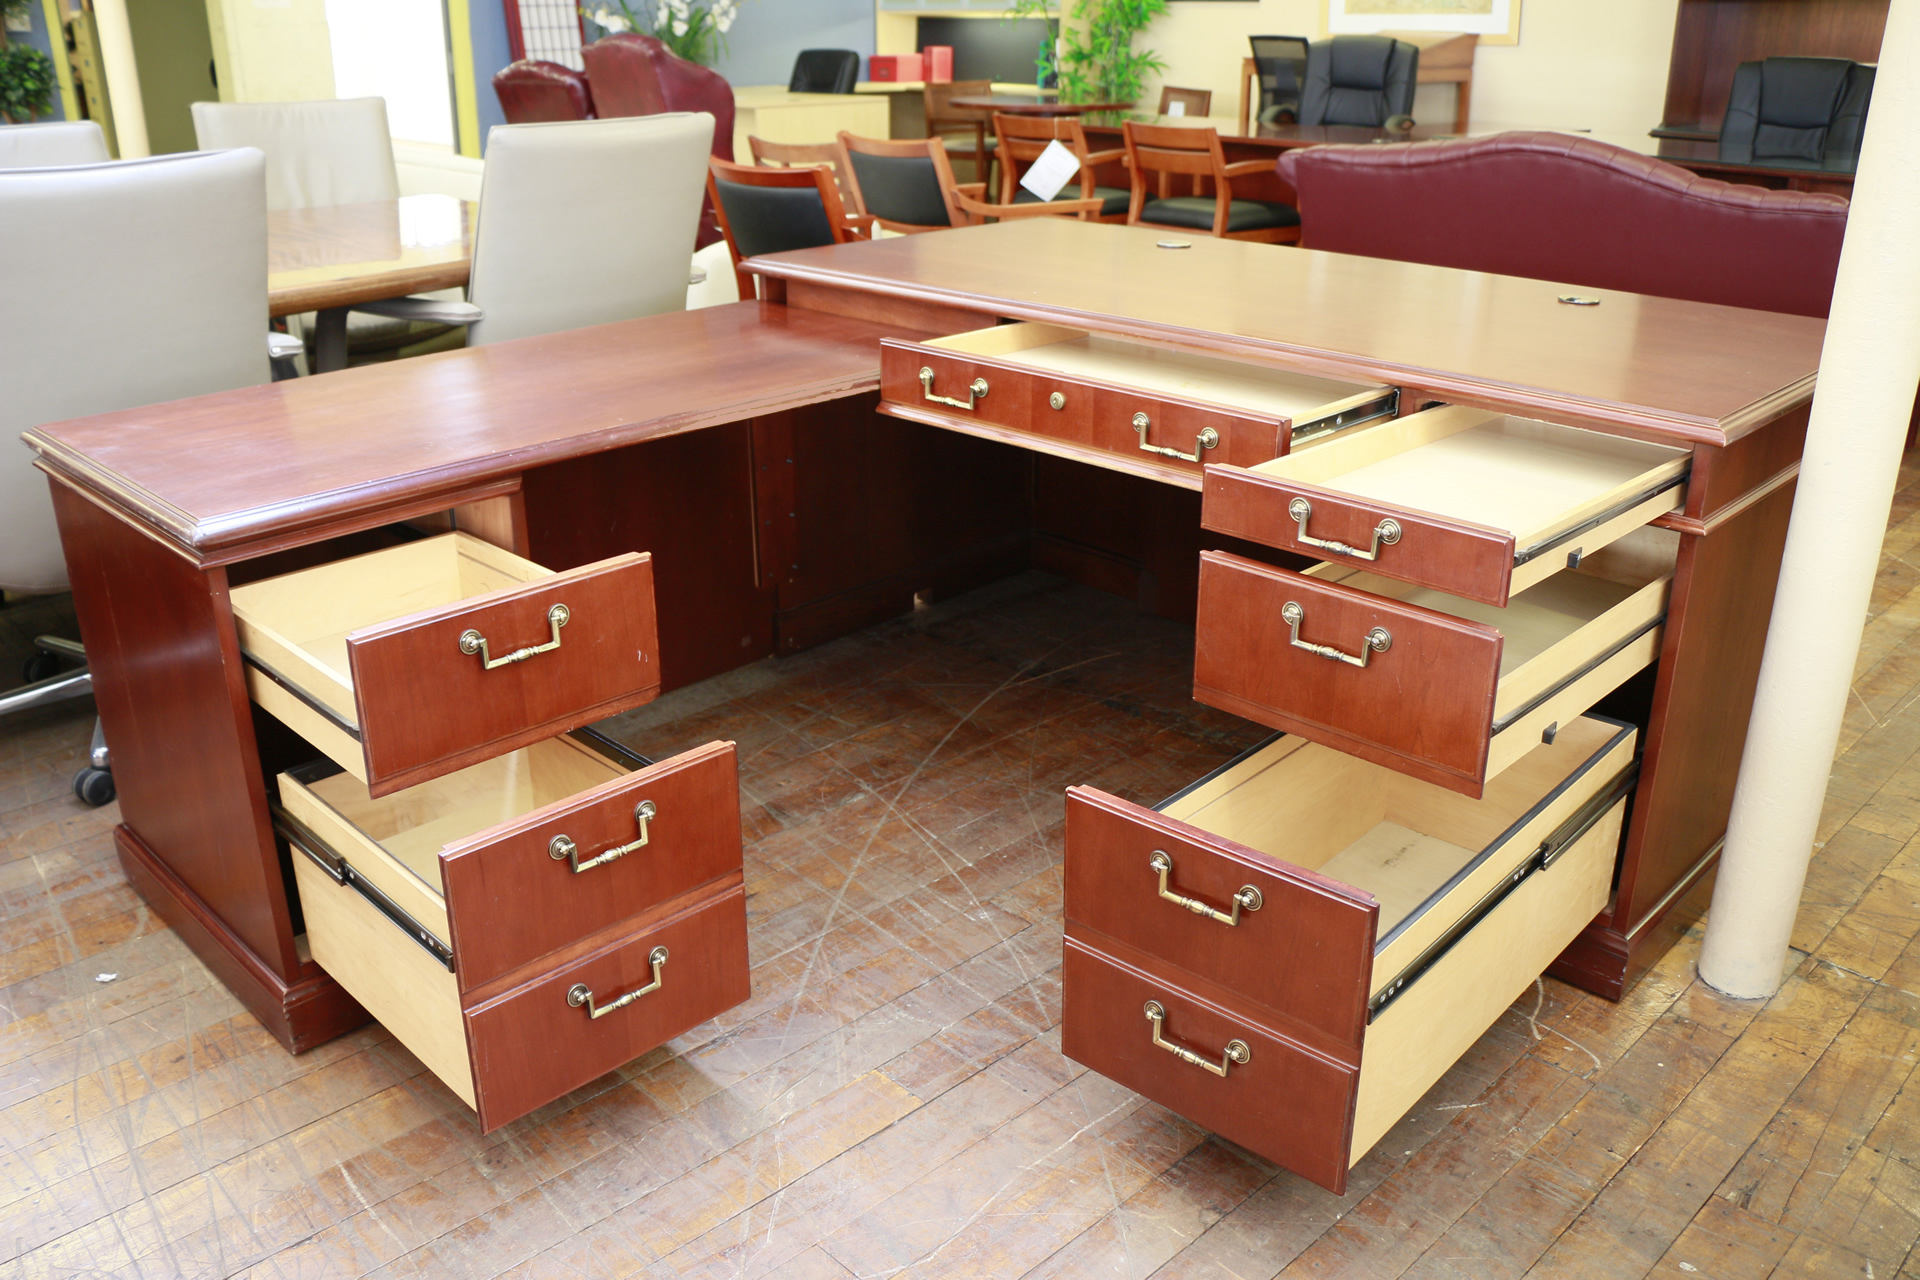 peartreeofficefurniture_peartreeofficefurniture_mg_3701.jpg